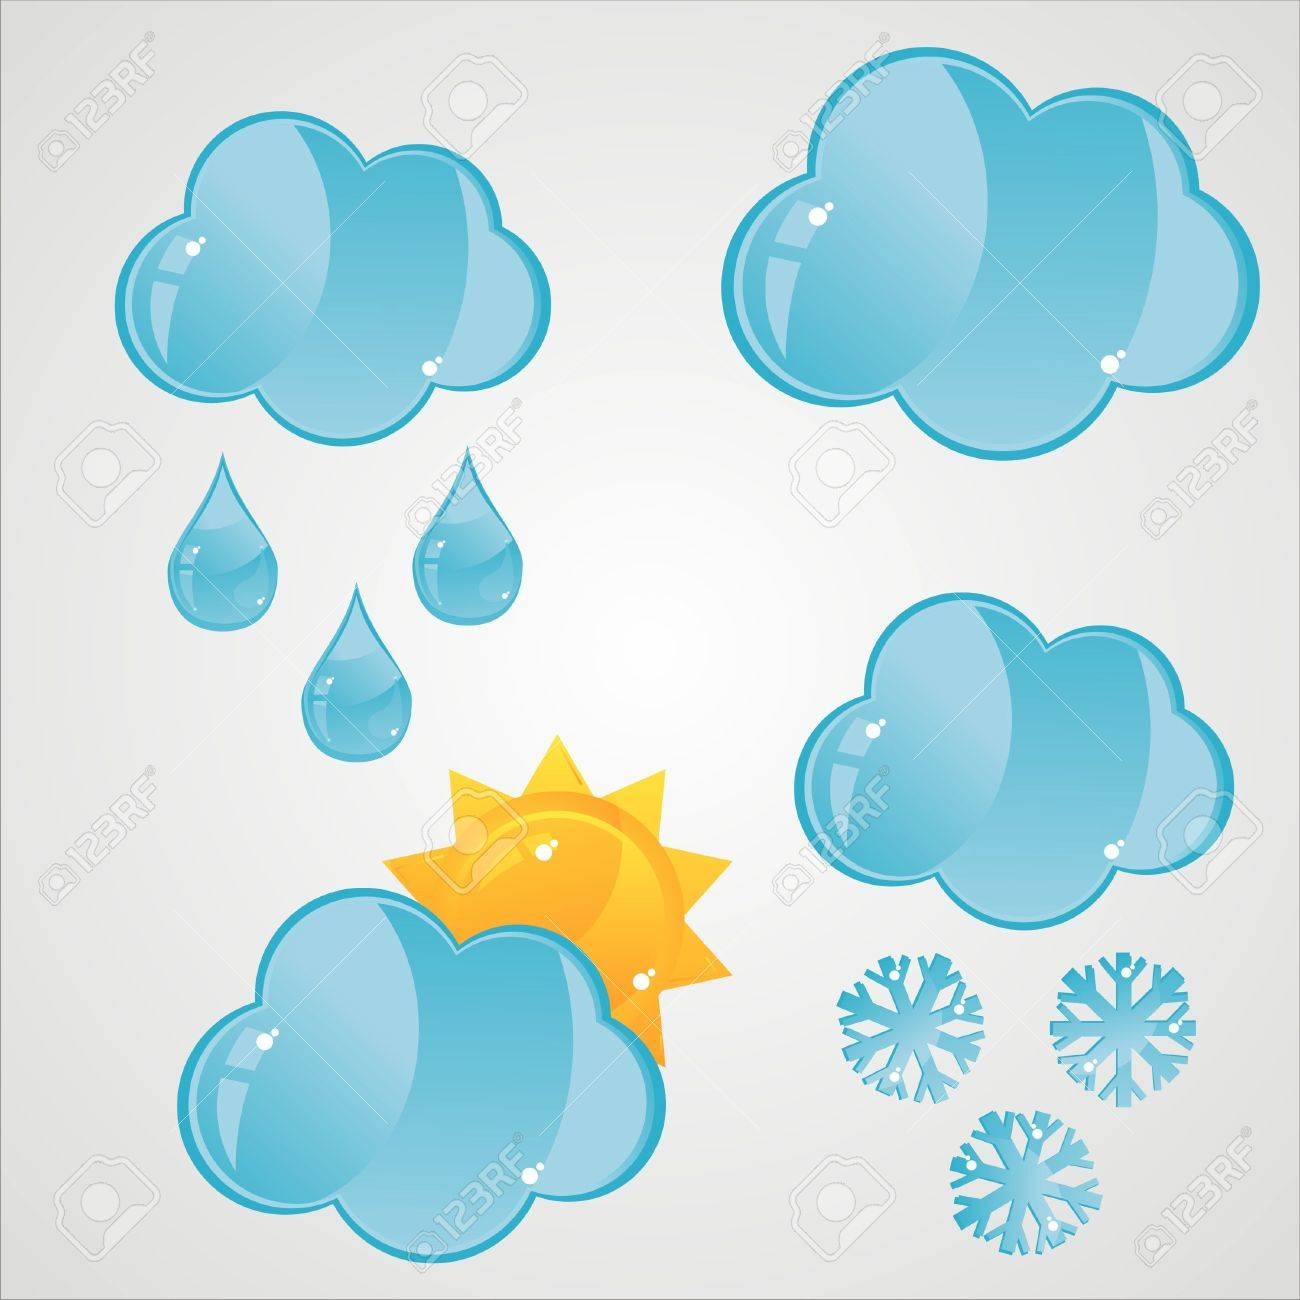 set of 4 glossy clouds icons Stock Vector - 9273439